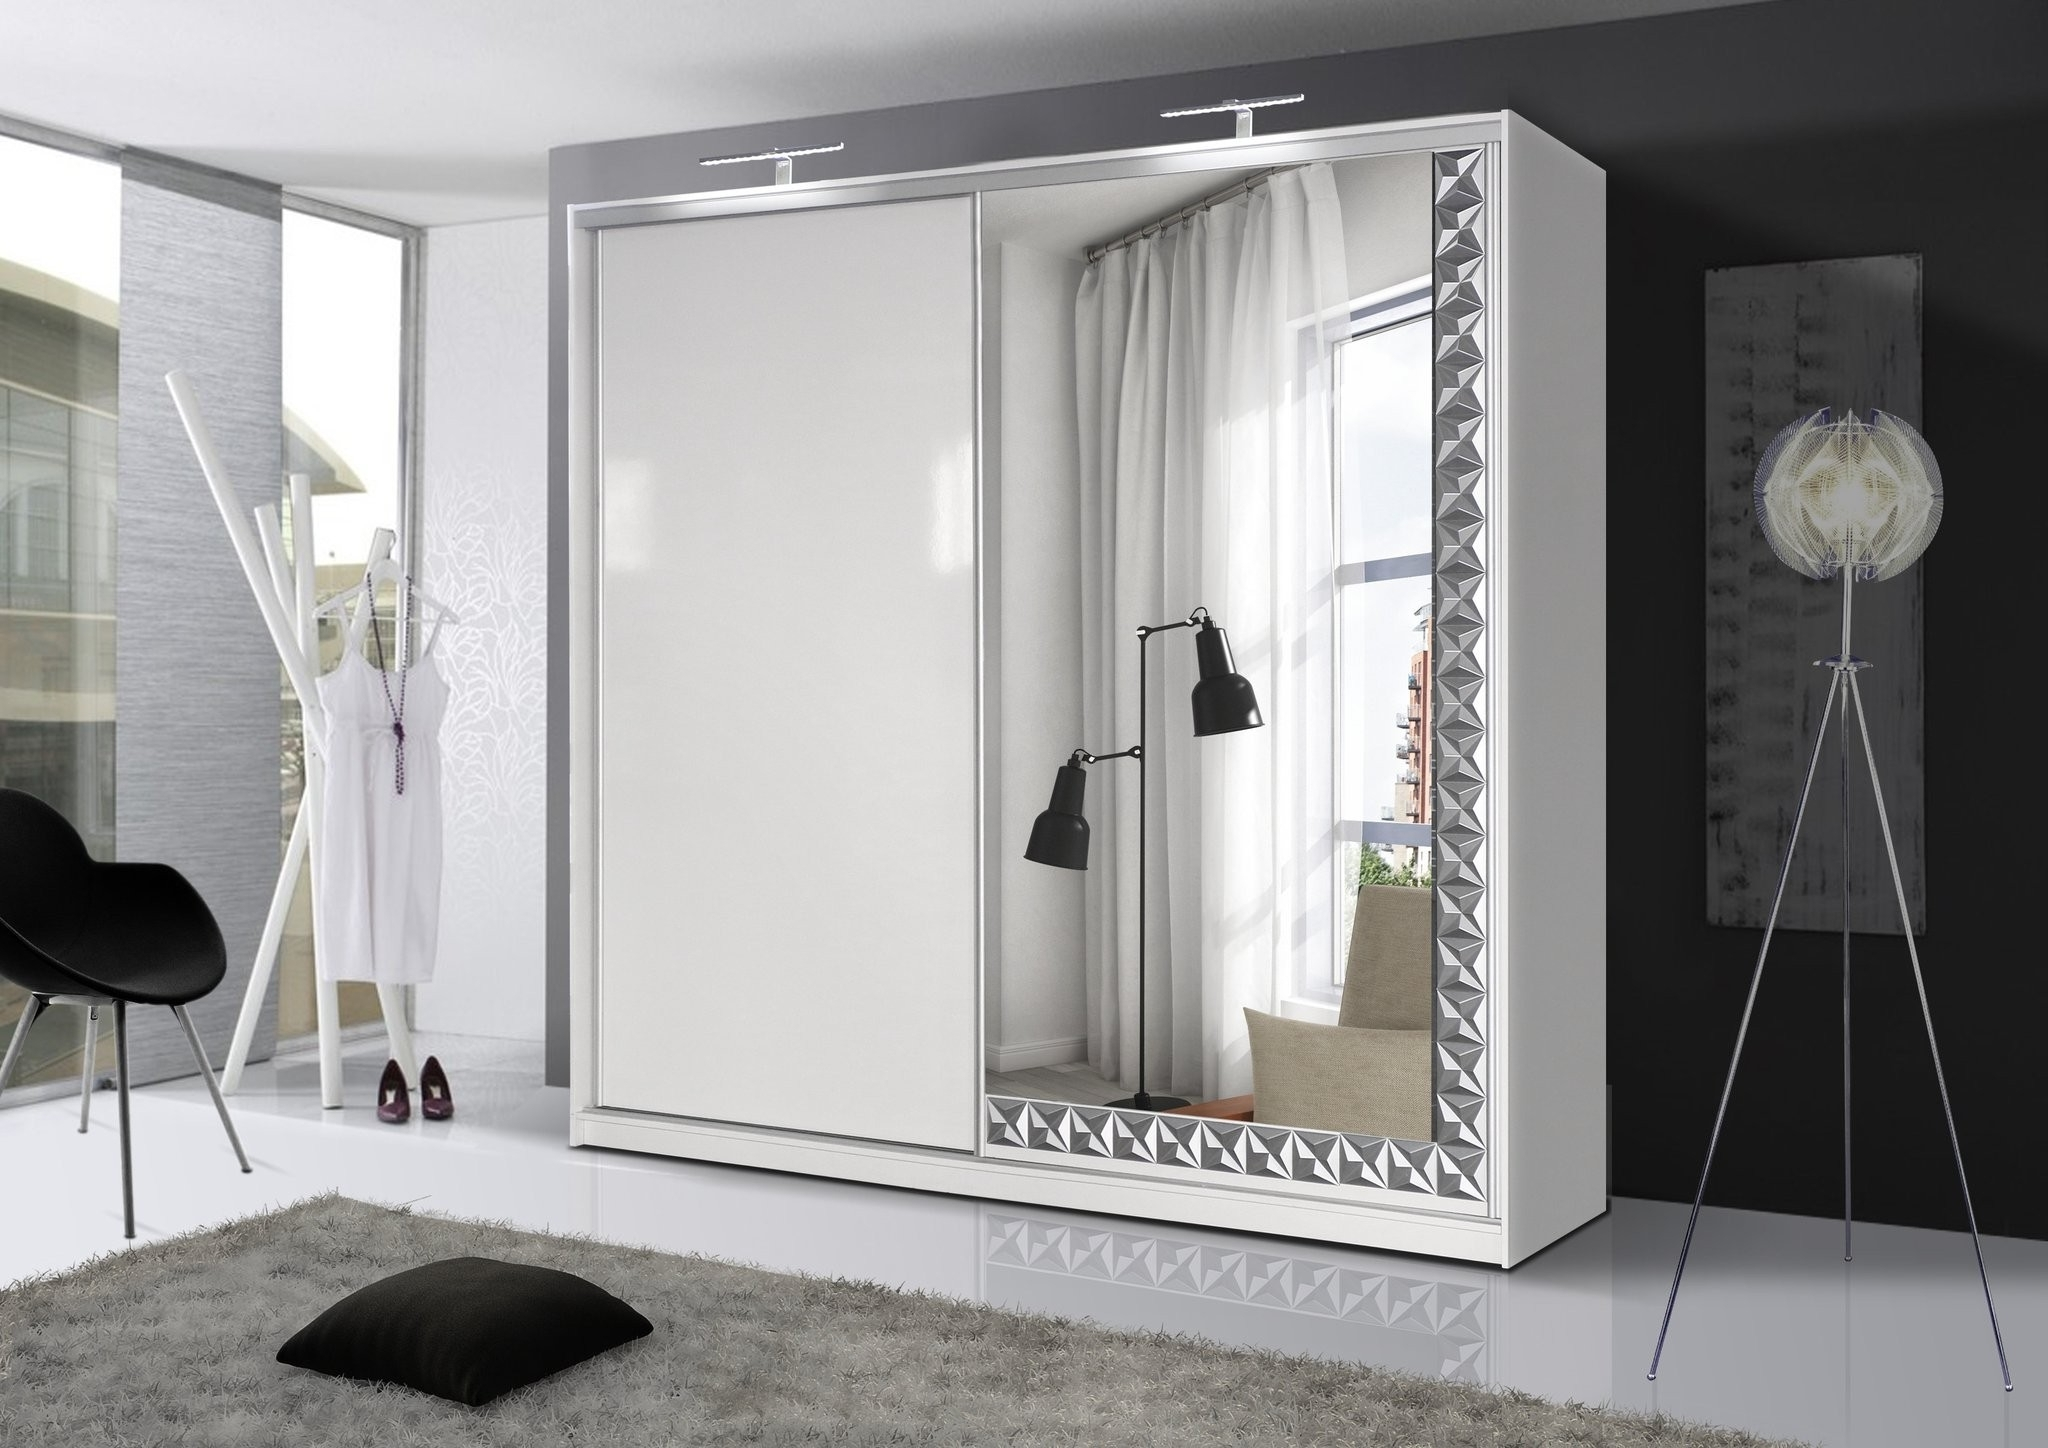 Fashionable Palermo High Gloss Mirror Sliding Wardrobe – Cheap Home Furniture With Black High Gloss Wardrobes (View 9 of 15)